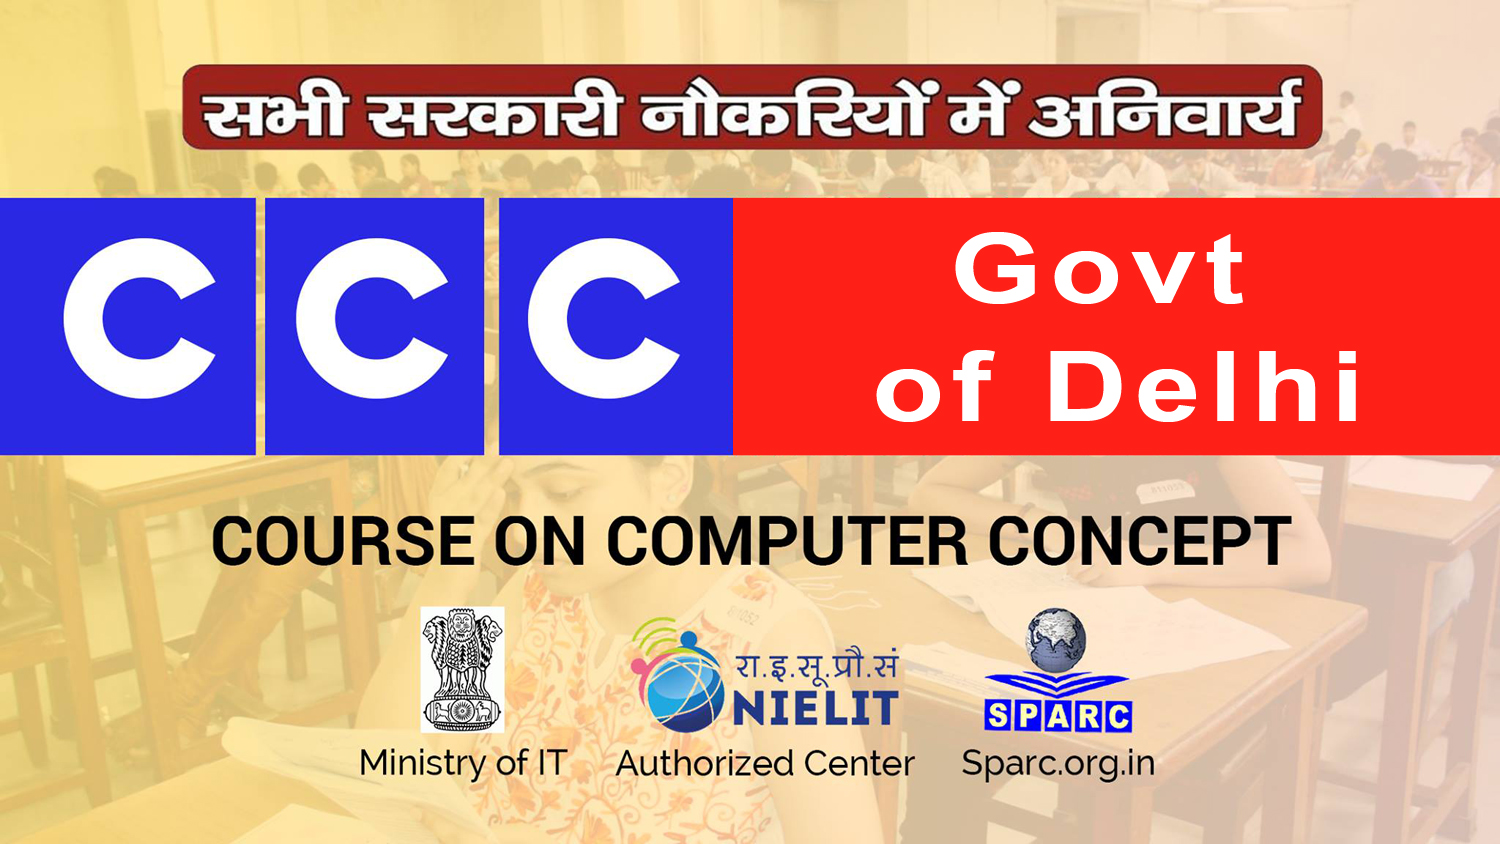 CCC/CCO (Certificate in Computer Operation)